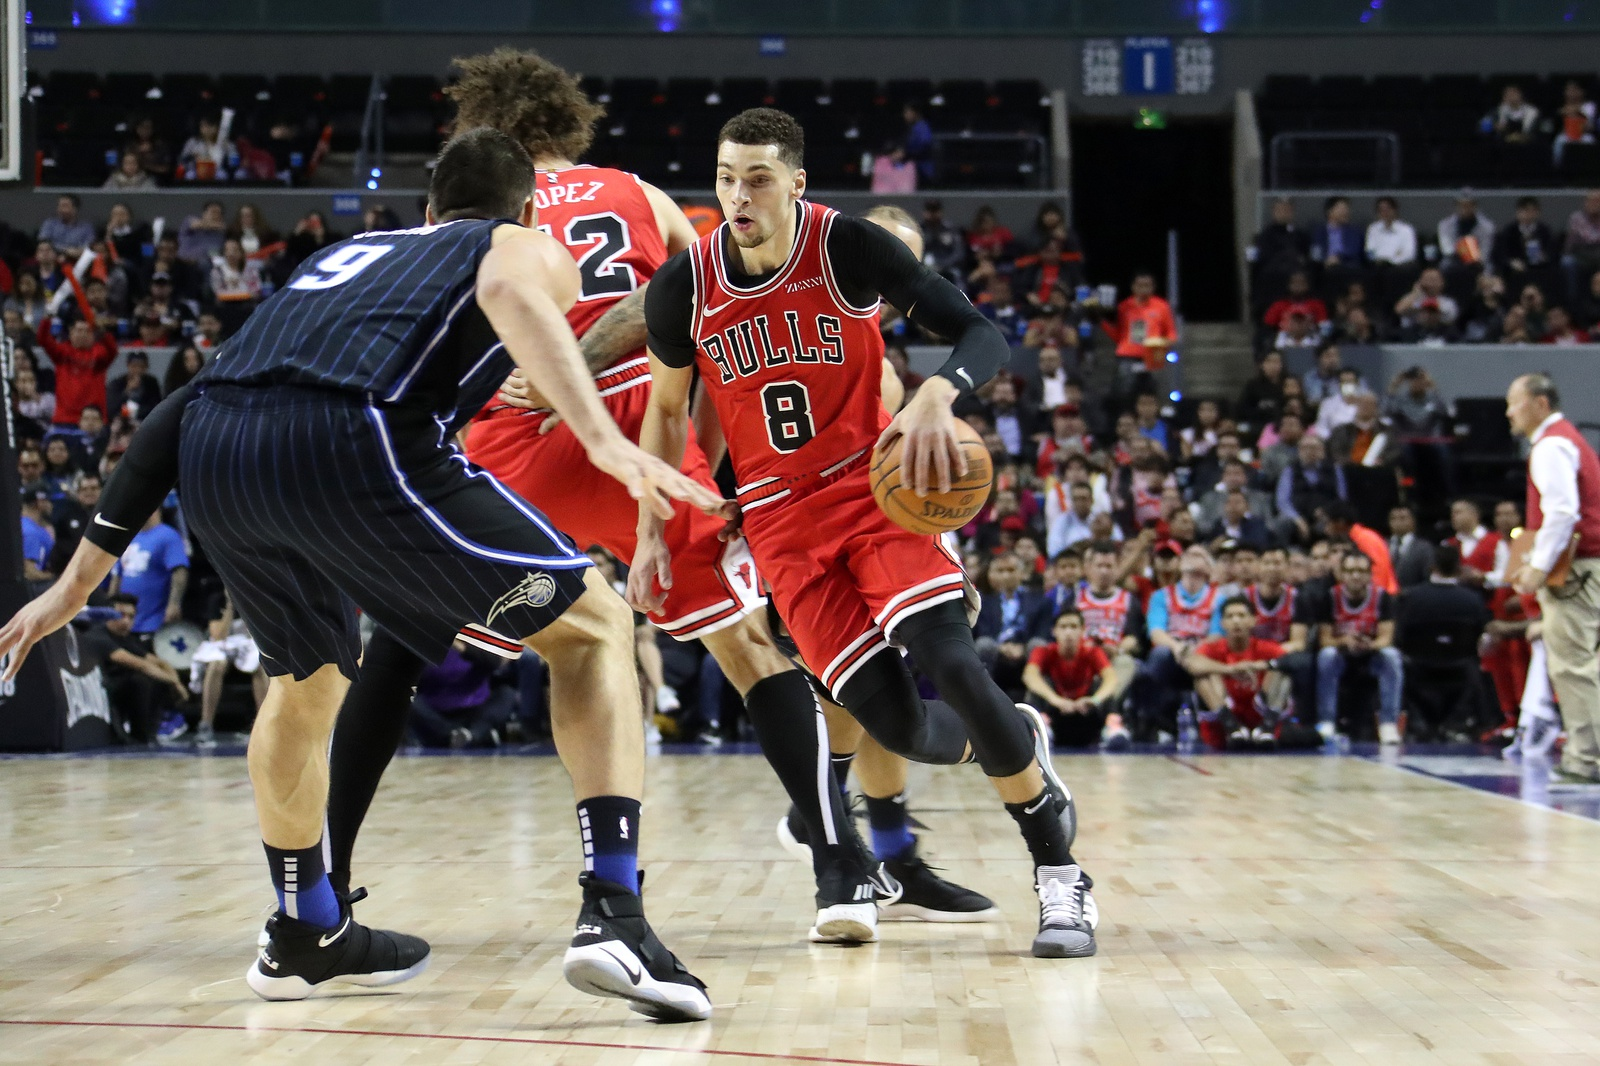 Zach LaVine #8 of the Chicago Bulls handles the ball against the Orlando Magic as part of the NBA Mexico Games 2018 on December 13, 2018 at Arena Ciudad de Mexico in Mexico City, Mexico.